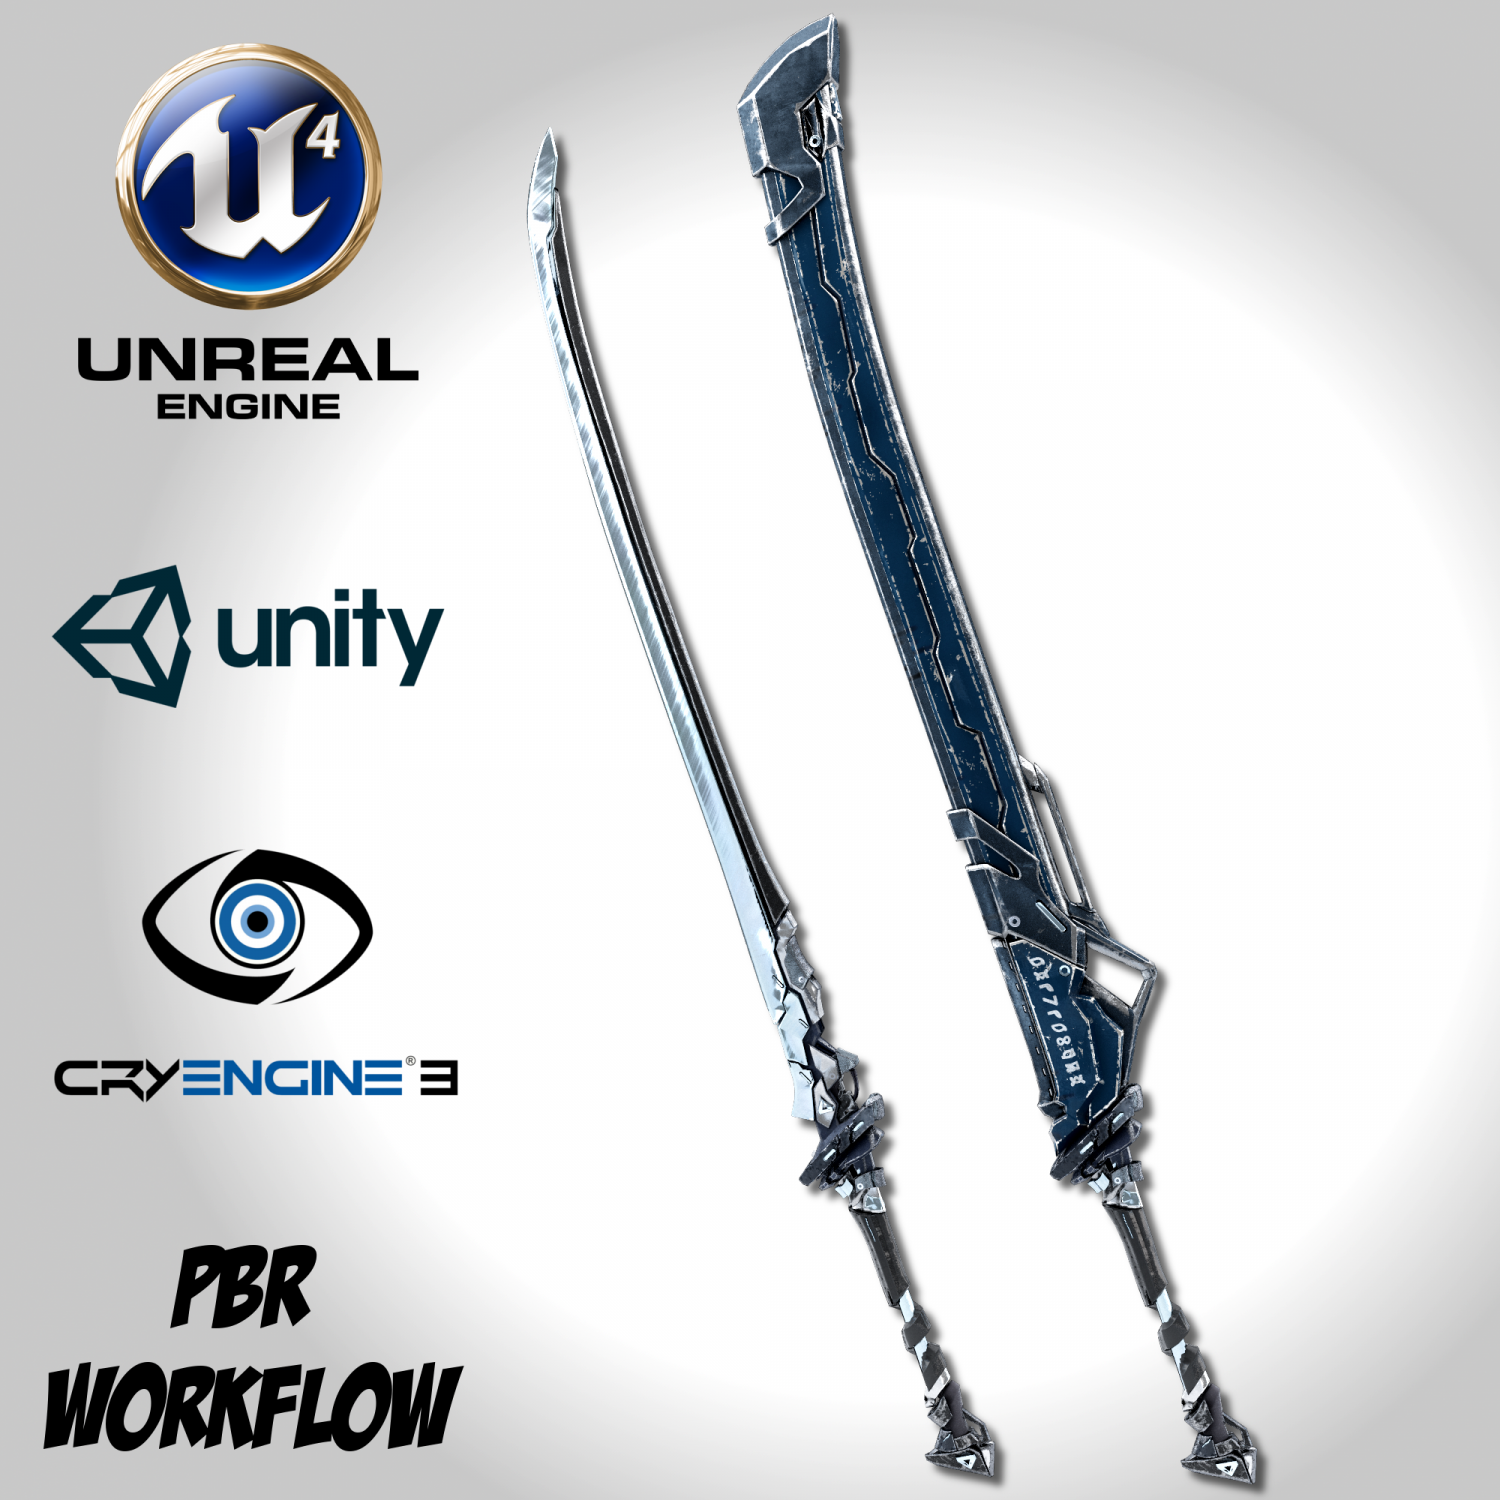 Sci-fi Frozen Sword - Remake 3D Model in SCI-FI 3DExport